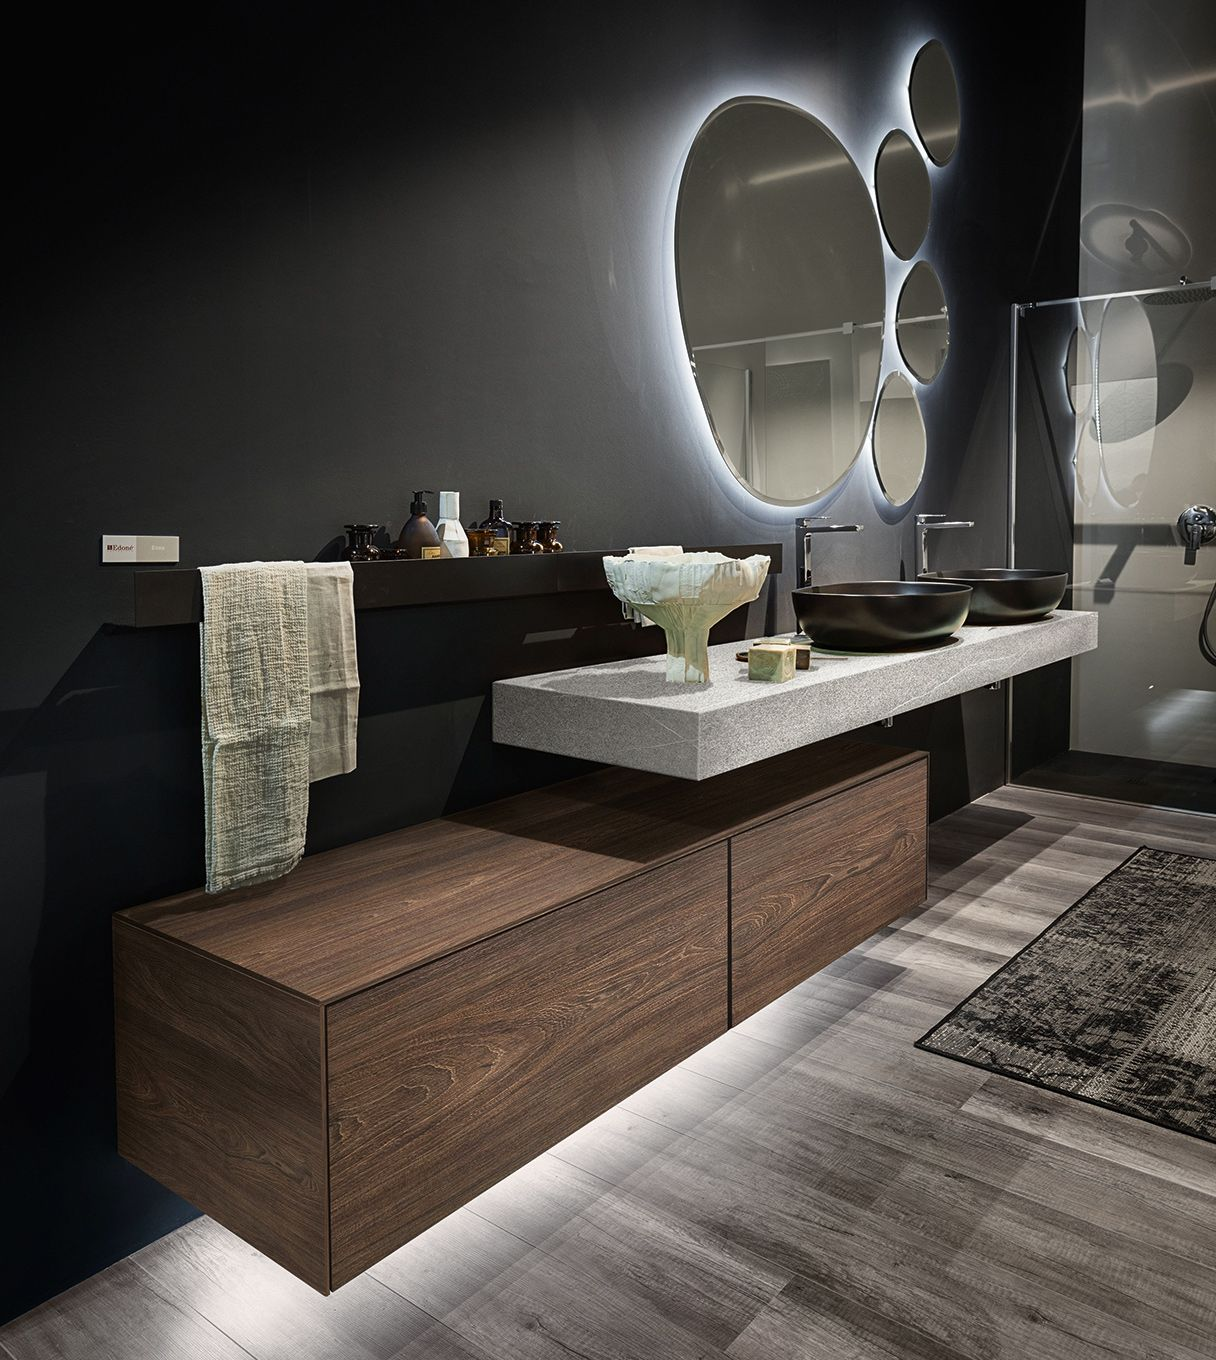 Interior Design Bathrooms Stunning Italian Bathroom Furnishing Edoné New Material Hpl  Bathrooms Decorating Design